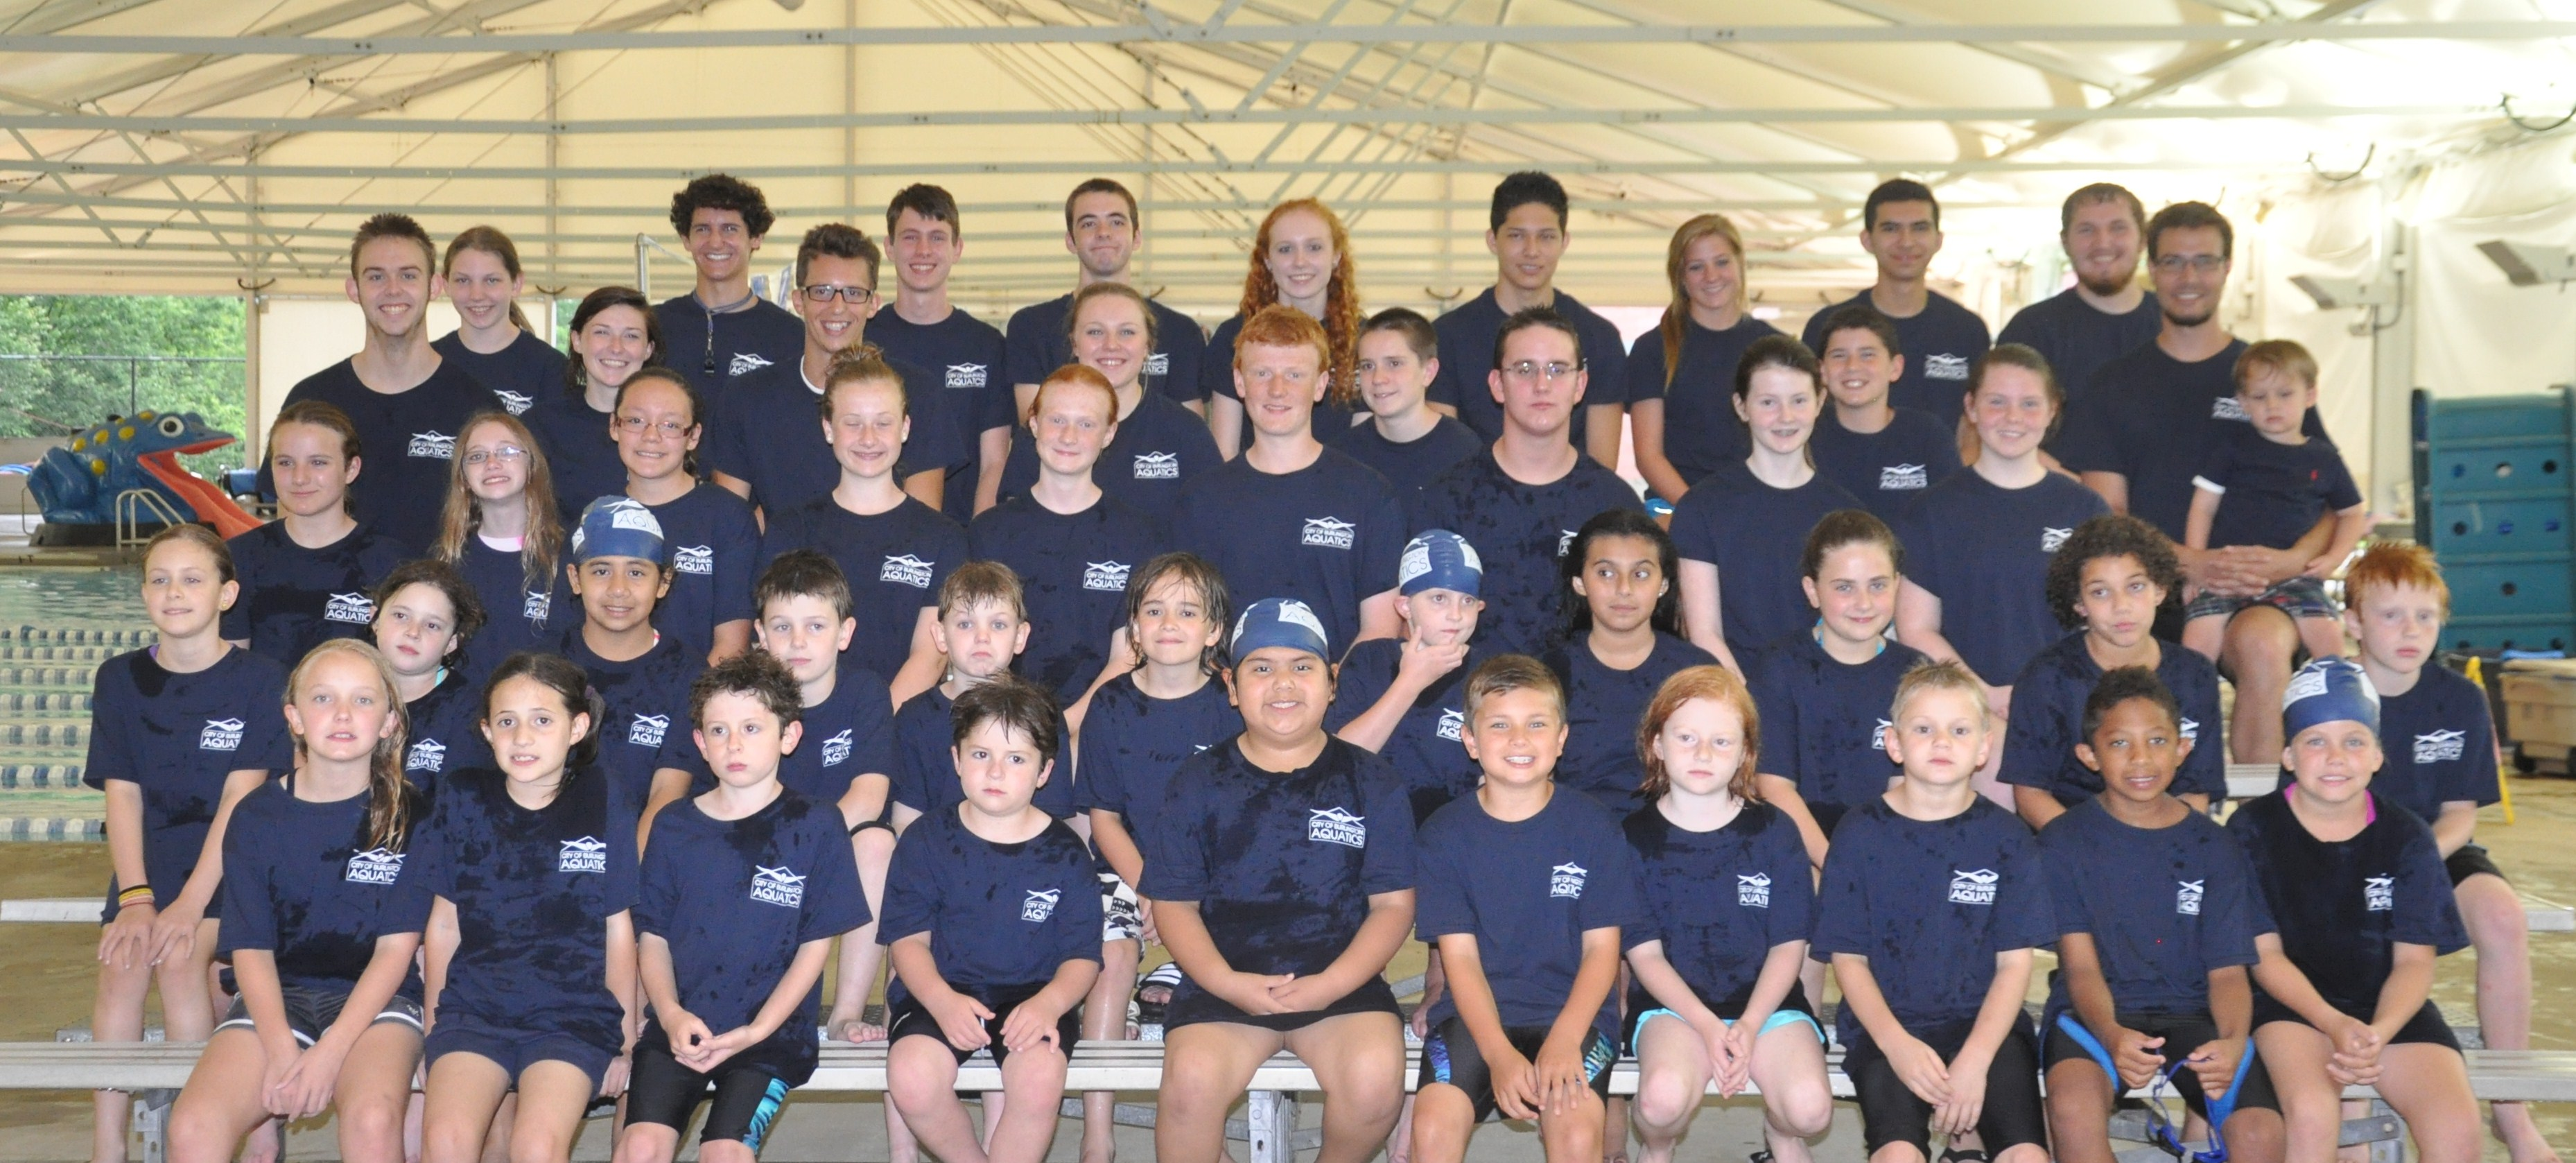 COBA Dragons Summer Swim Team Program team Photo